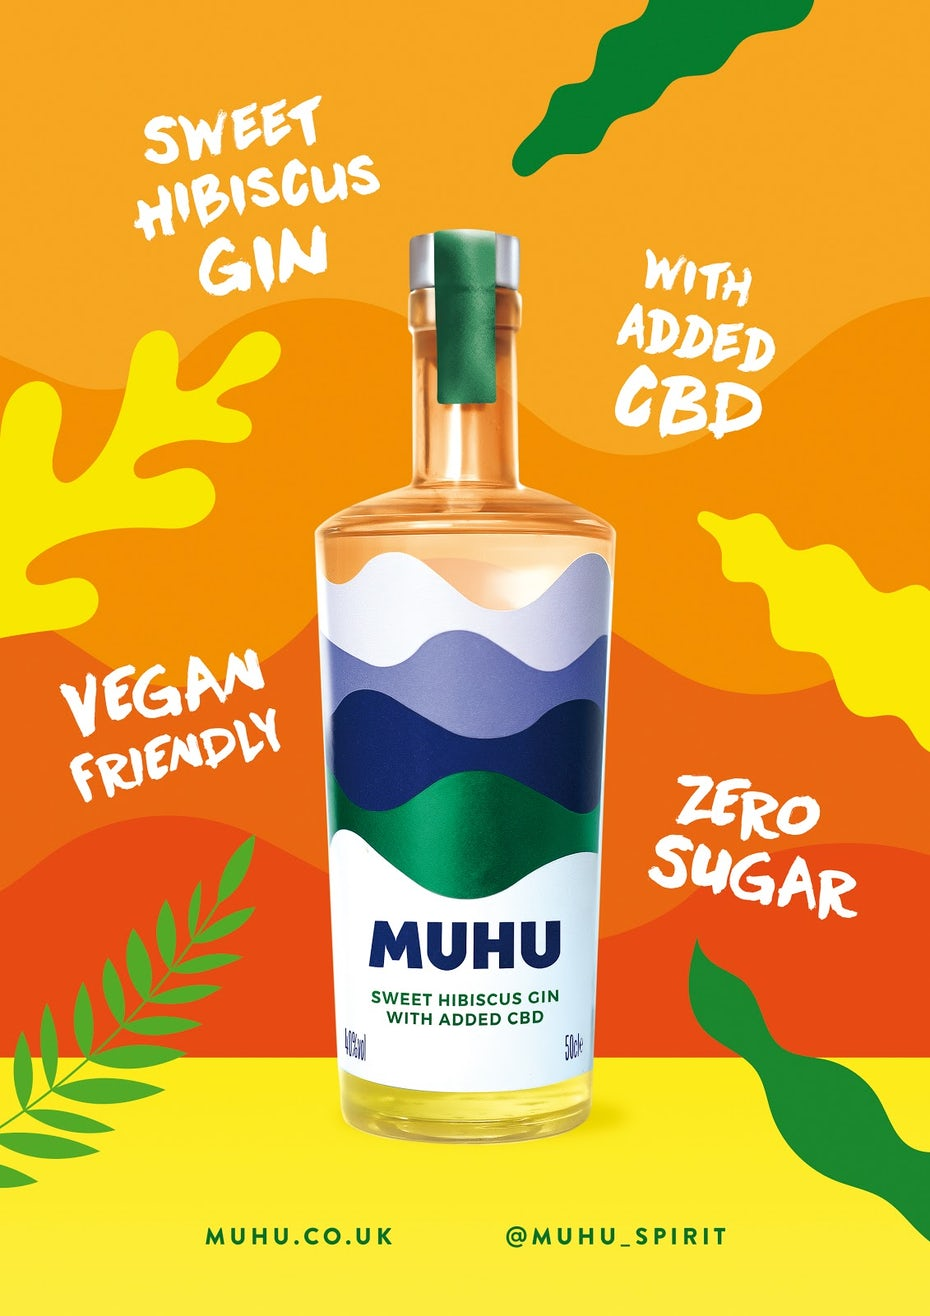 MUHU flyer design